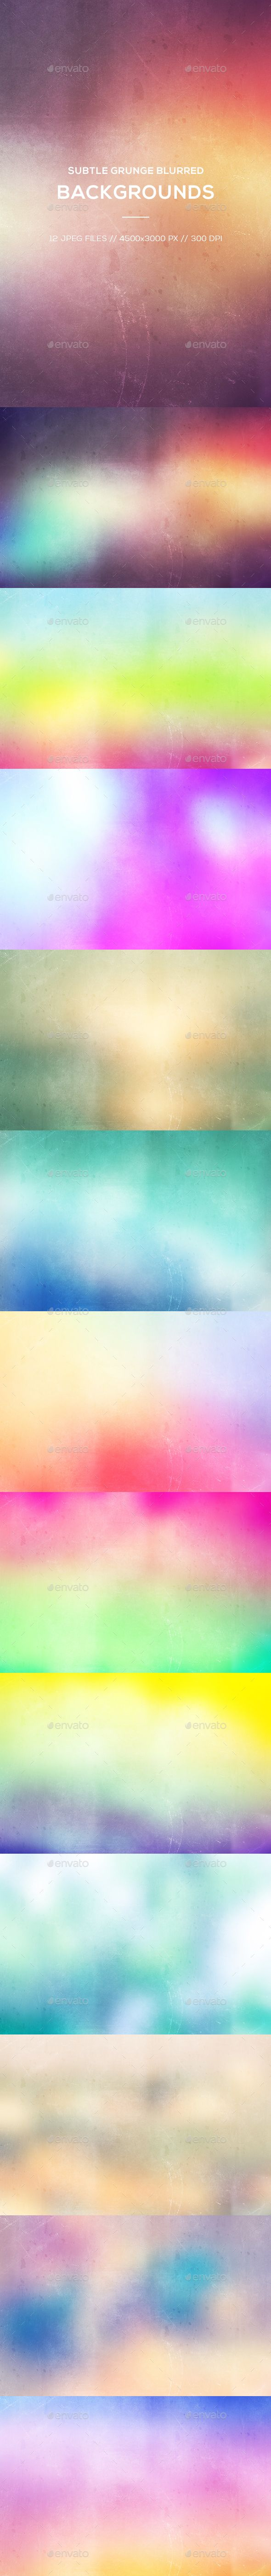 Subtle Grunge Blurred Backgrounds - #Abstract #Backgrounds Download here: https://graphicriver.net/item/subtle-grunge-blurred-backgrounds/20298159?ref=alena994